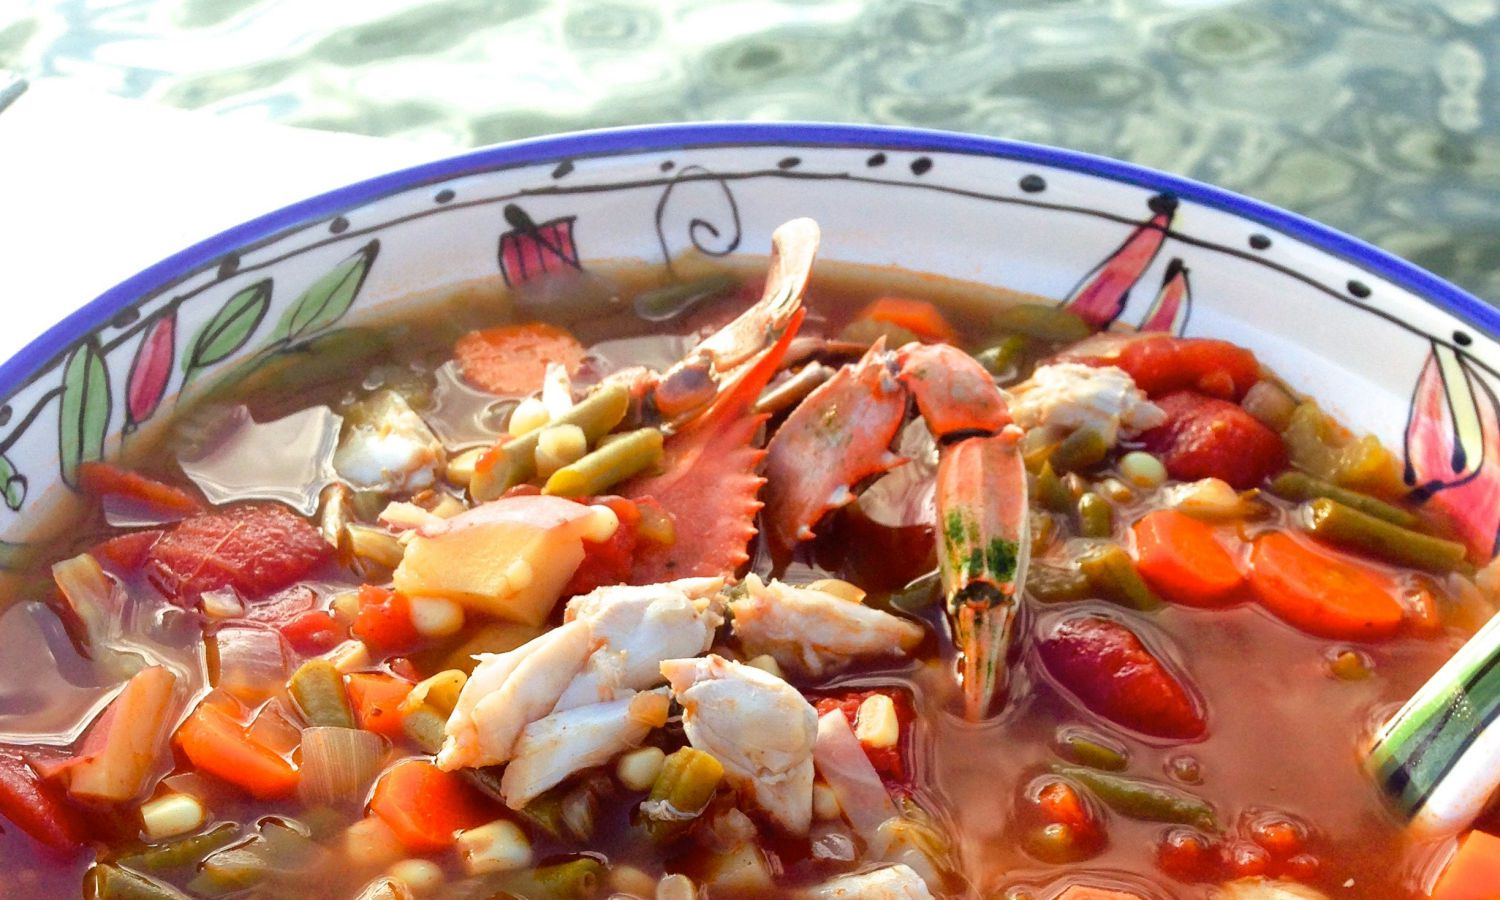 Country Crab Soup - Serves 8 to 105 quarts water2 Knorr chicken bouillon cubes2 Knorr beef bouillon cubes3 cups stewed tomatoes1/4 cup Worcestershire sauce2 tablespoons Old Bay seasoning1/2 teaspoon hot sauce2 bay leaves1 1/2 cups sliced carrots1 1/2 cups thinly sliced celery1 1/2 cups white corn, fresh or frozen1 1/2 cups green beans, fresh or frozen3/4 cup chopped cabbage1 onion, chopped2 cups cubed red potatoes2 pounds jumbo lump crabmeat, any shells removedsalt and pepperBring the water to a boil in a large pot. Add the bouillon cubes and stir to dissolve. Add the tomatoes, Worcestershire, Old Bay, hot sauce and bay leaves, stirring to combine.Simmer for 5 minutes. Add all vegetables except the potatoes and bring to a boil. Cook for 10 minutes.Add potatoes and continue to cook until tender. Add the crabmeat and heat thoroughly. Avoid stirring too much and breaking up the lumps of meat.Season with salt and pepper.